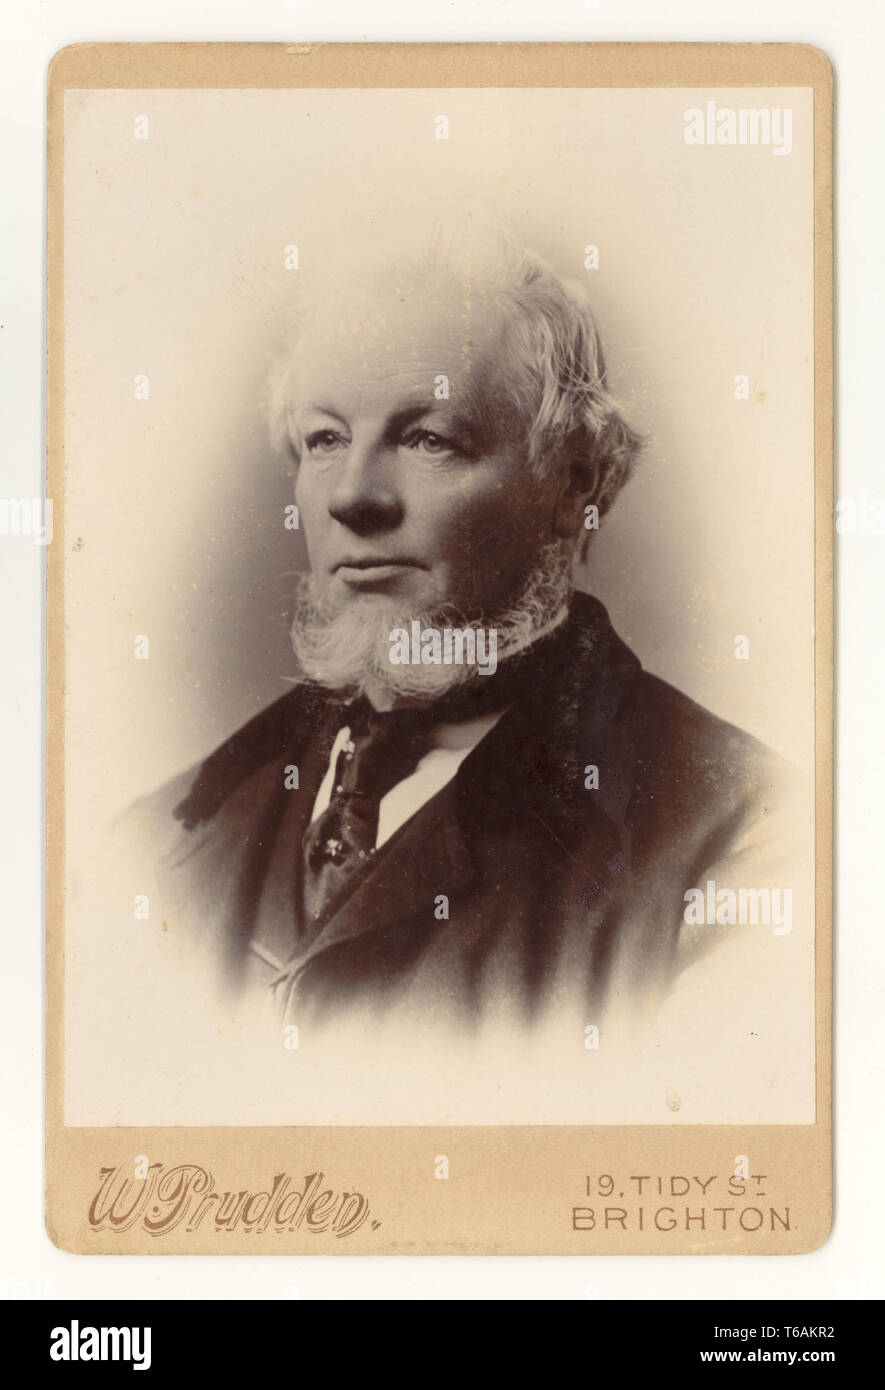 Late Victorian Cabinet Card of man with beard, by W. Prudden, 19 Tidy St., Brighton, U.K. circa 1899, 1900.jpg - T6AKR2 Uploaded on : 30 Apr 2019 Stock Photo